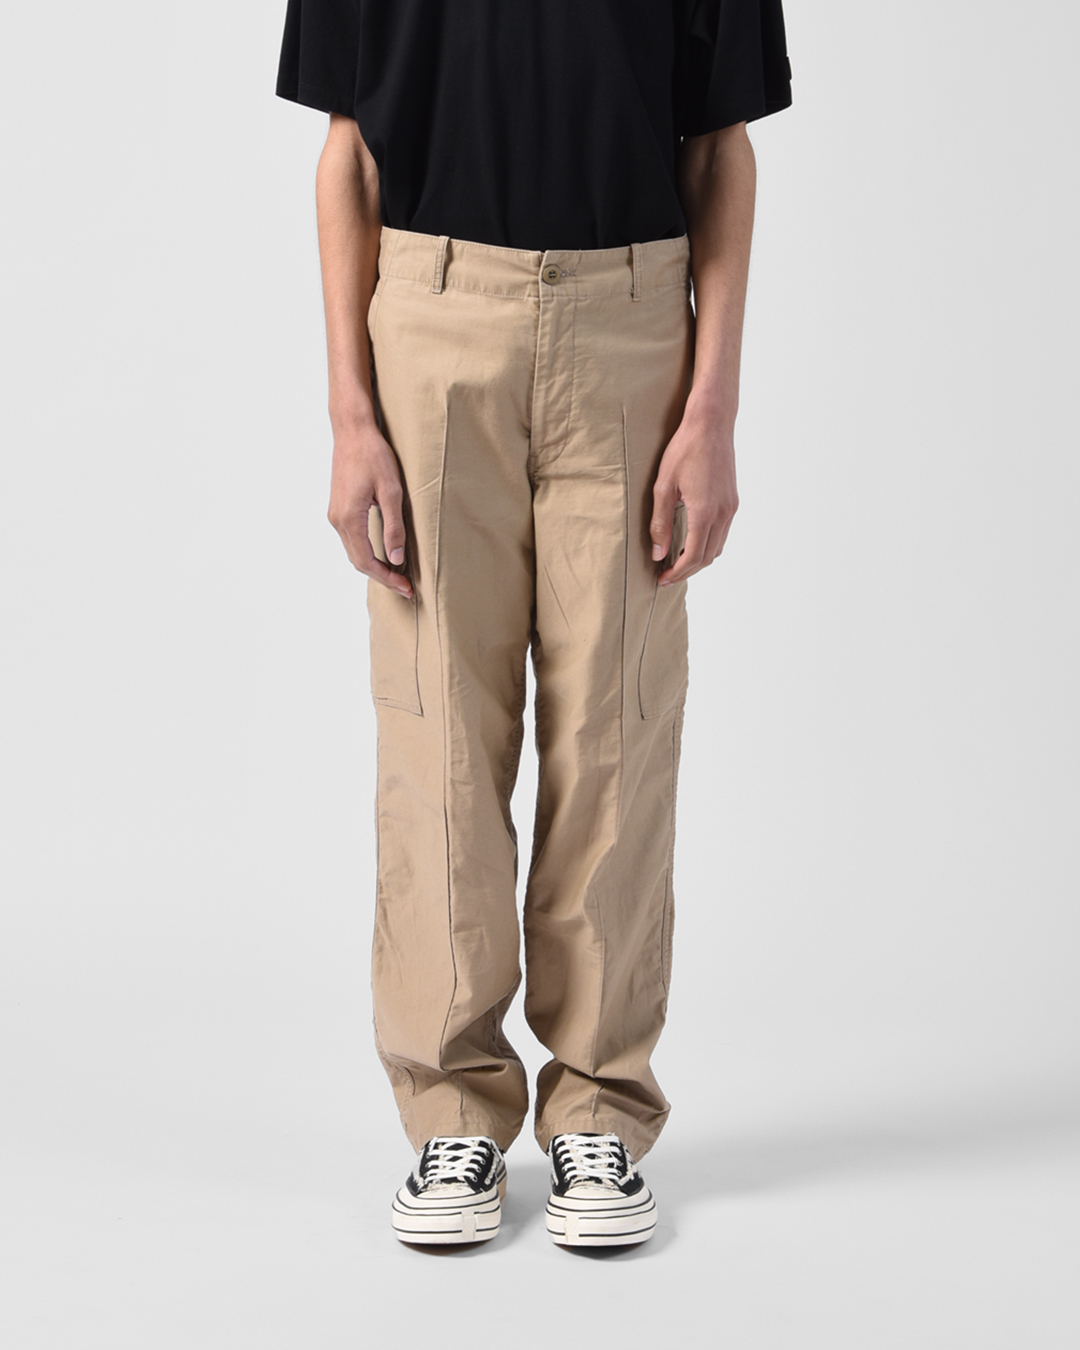 CARGO TROUSERS 詳細画像 Olive 12